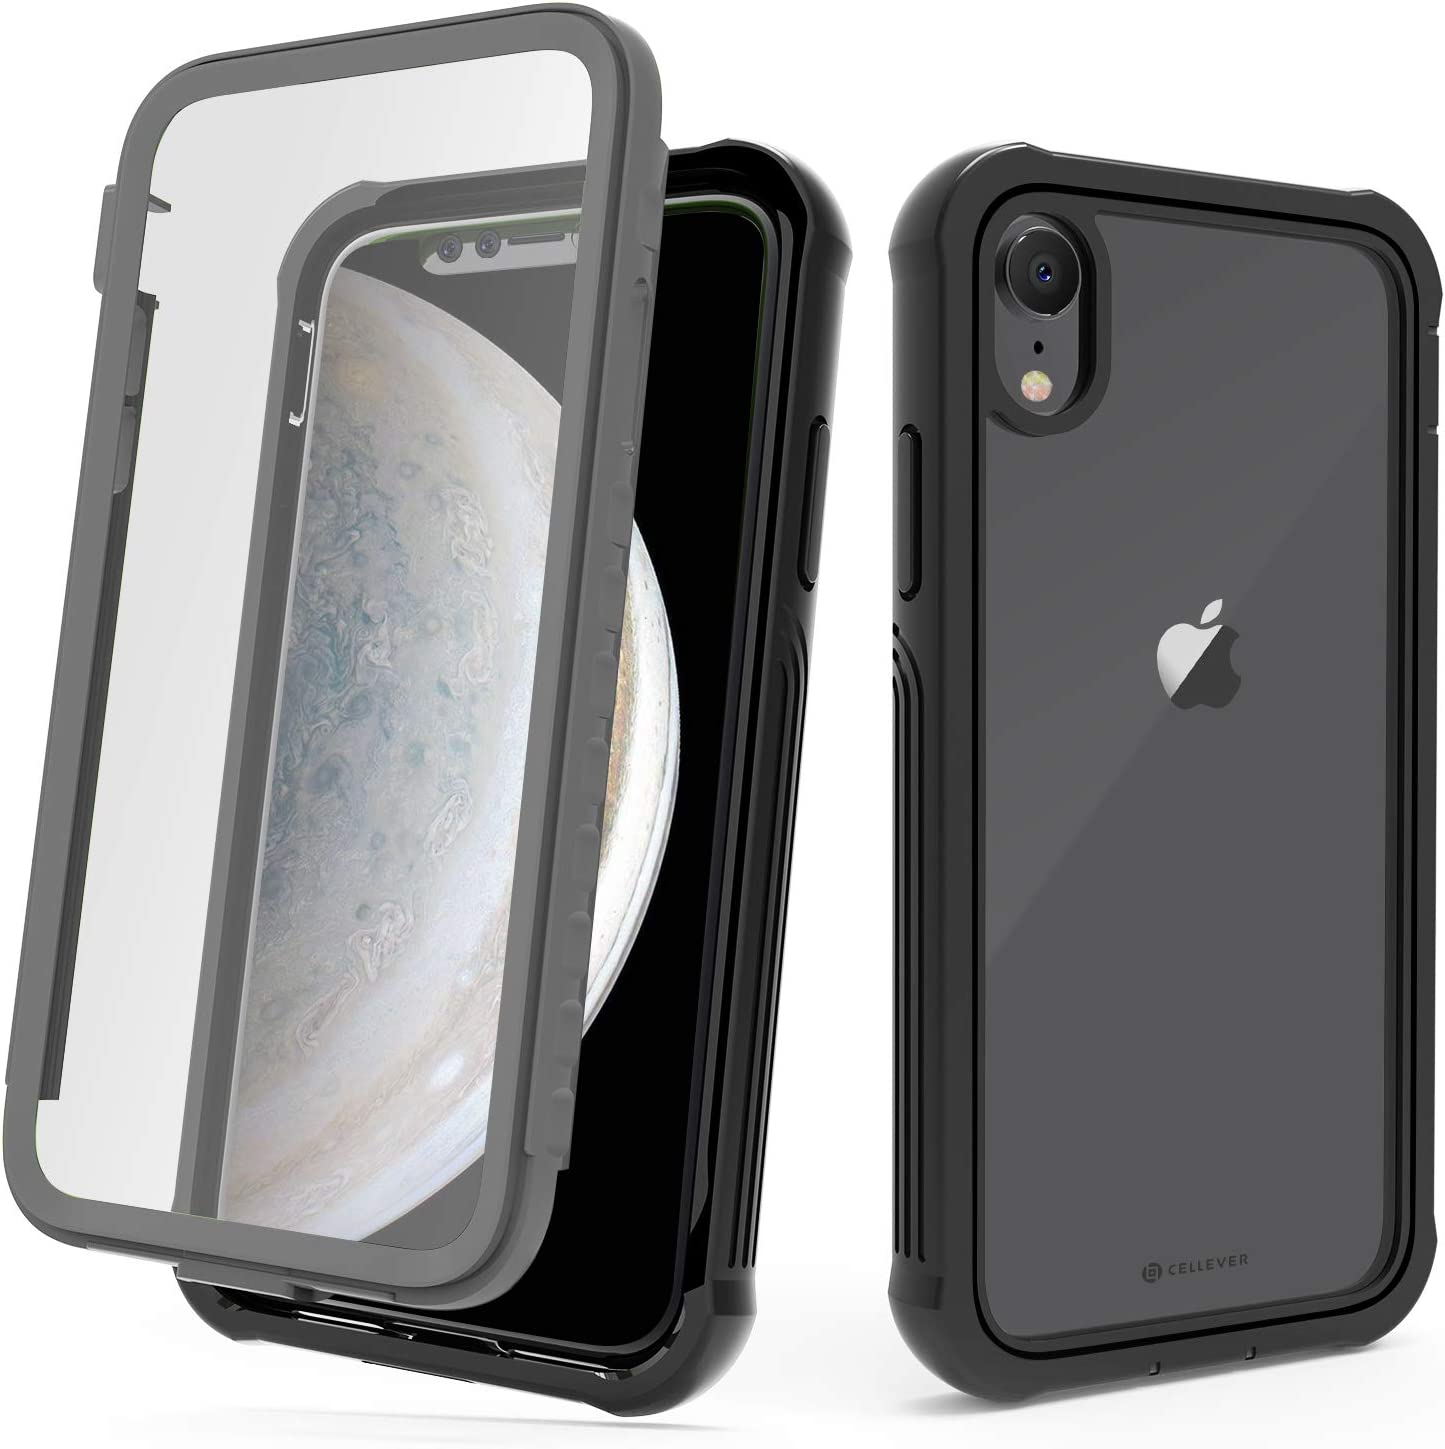 CellEver Compatible with iPhone XR Case, Heavy Duty Clear Full-Body Protective Transparent Cover with Soft Shock Absorbing TPU Bumper and Built-in Screen Protector - Black